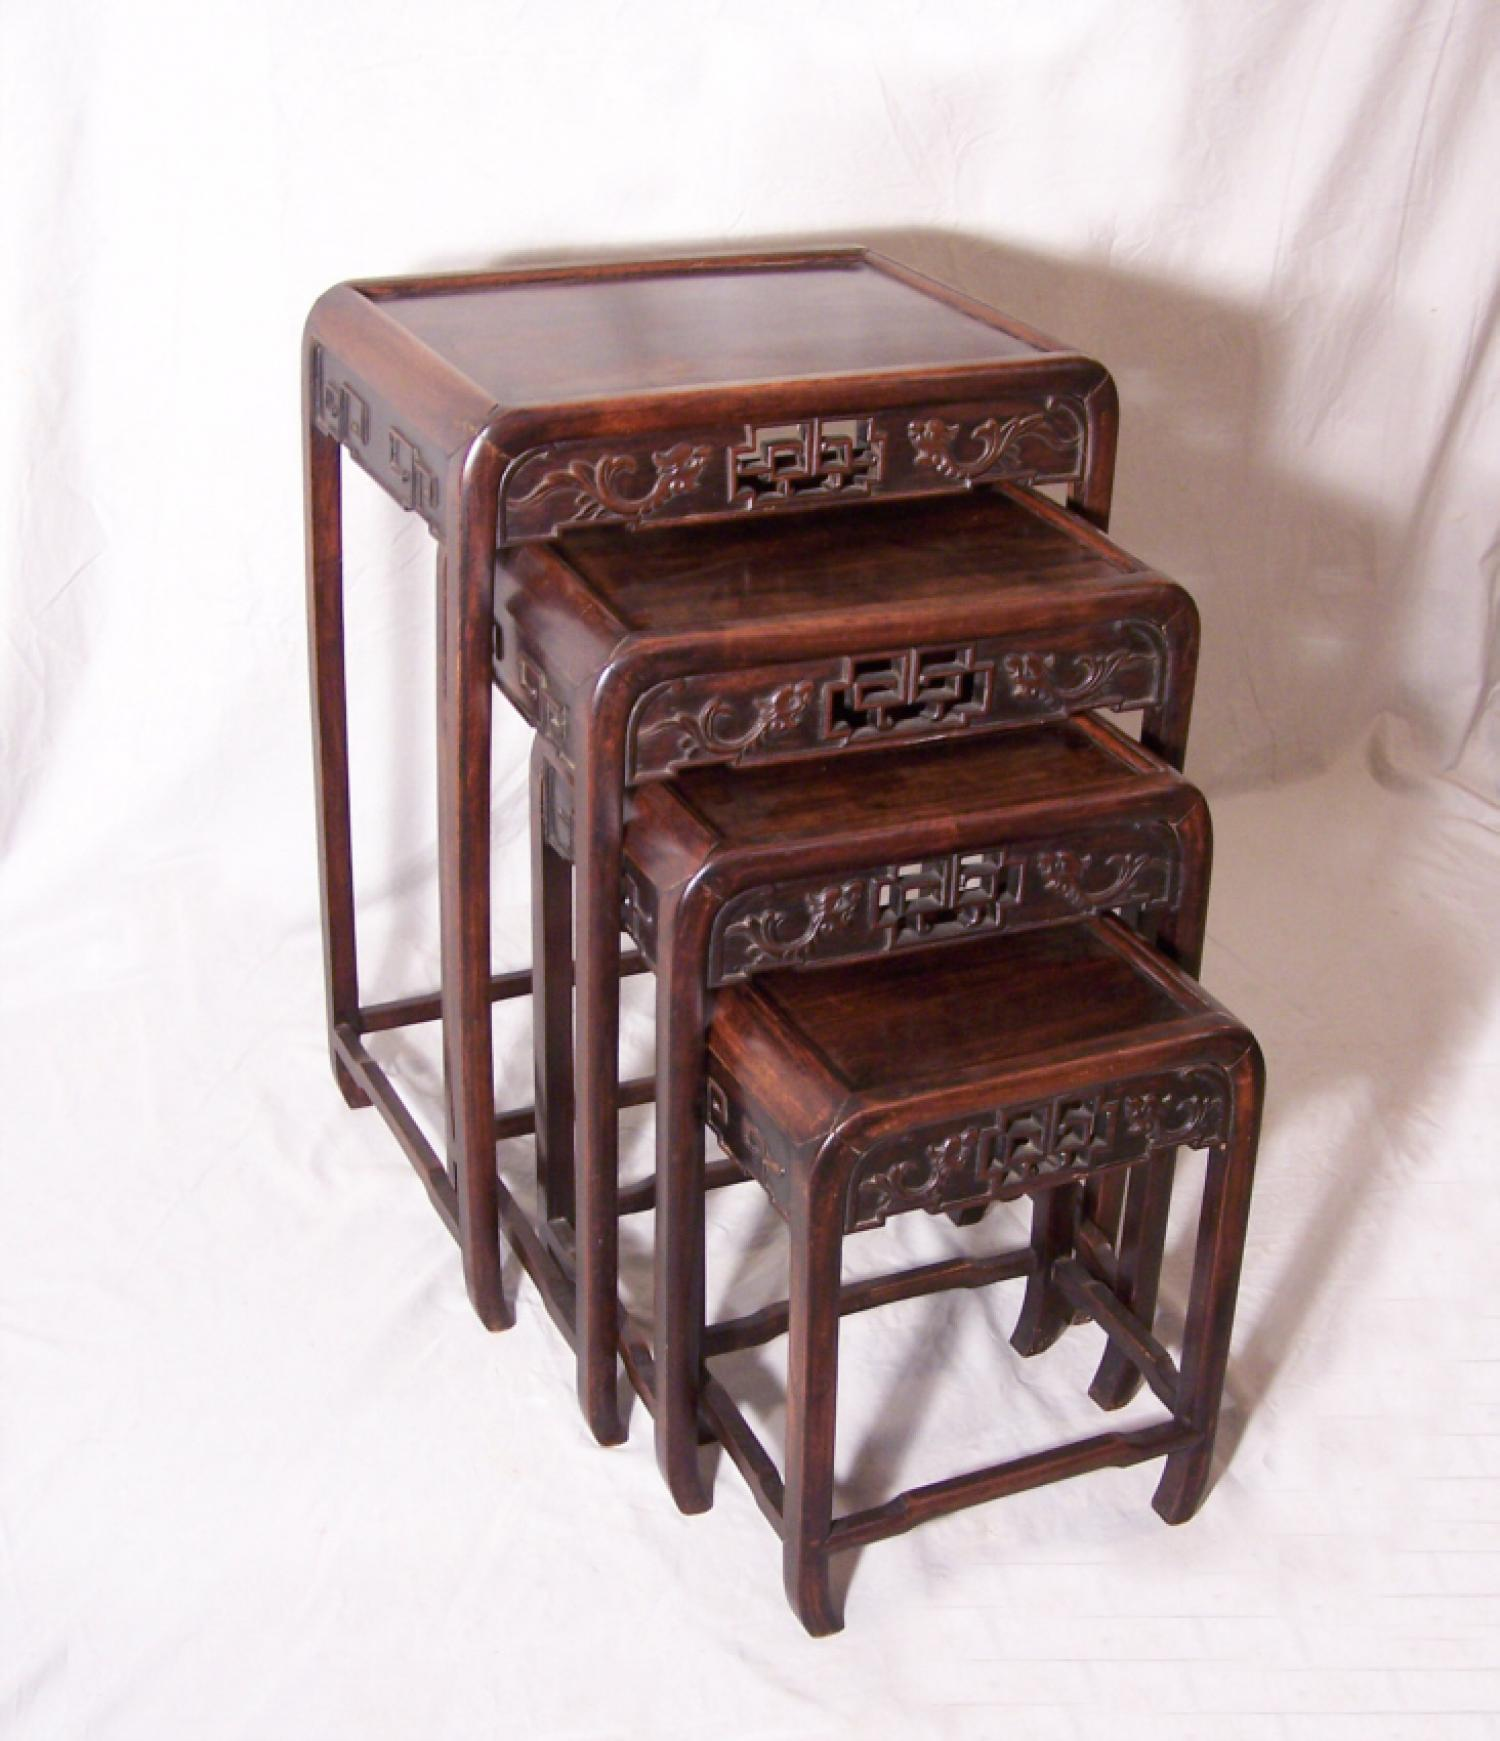 Antique set of Chinese stacking tables c1870